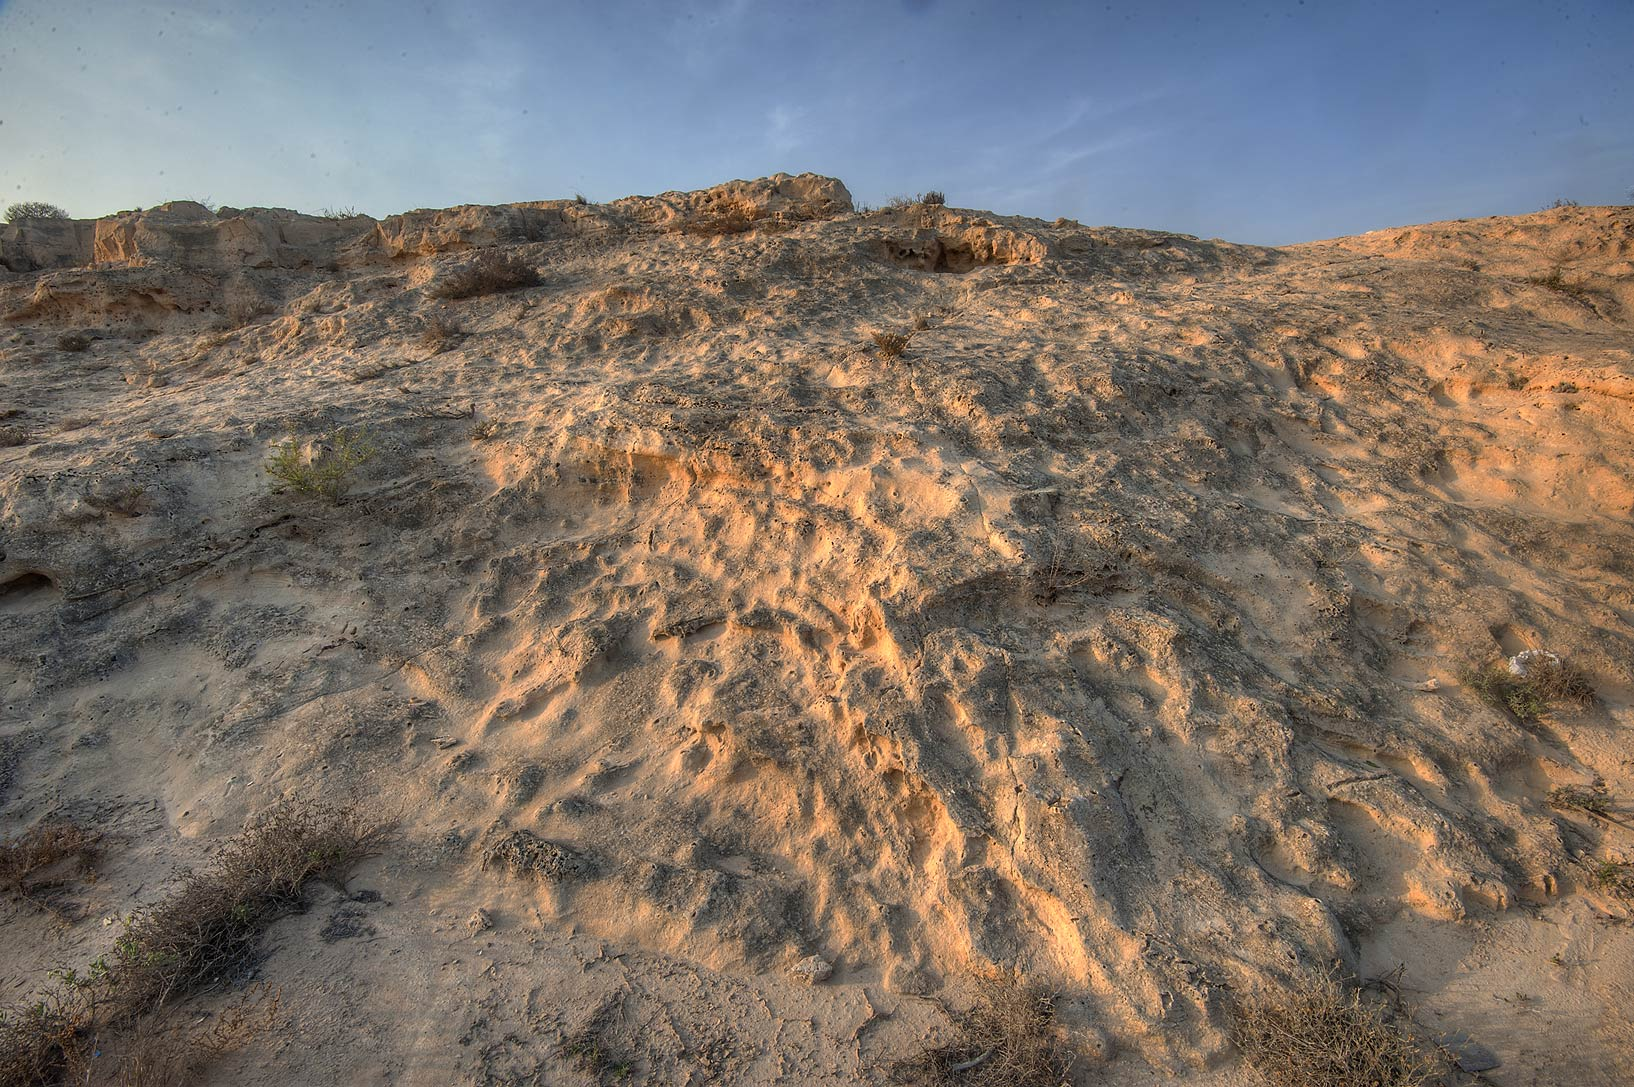 Texture of stone of jebel near old fishing...eastern coast, Ash Shamal area. Qatar